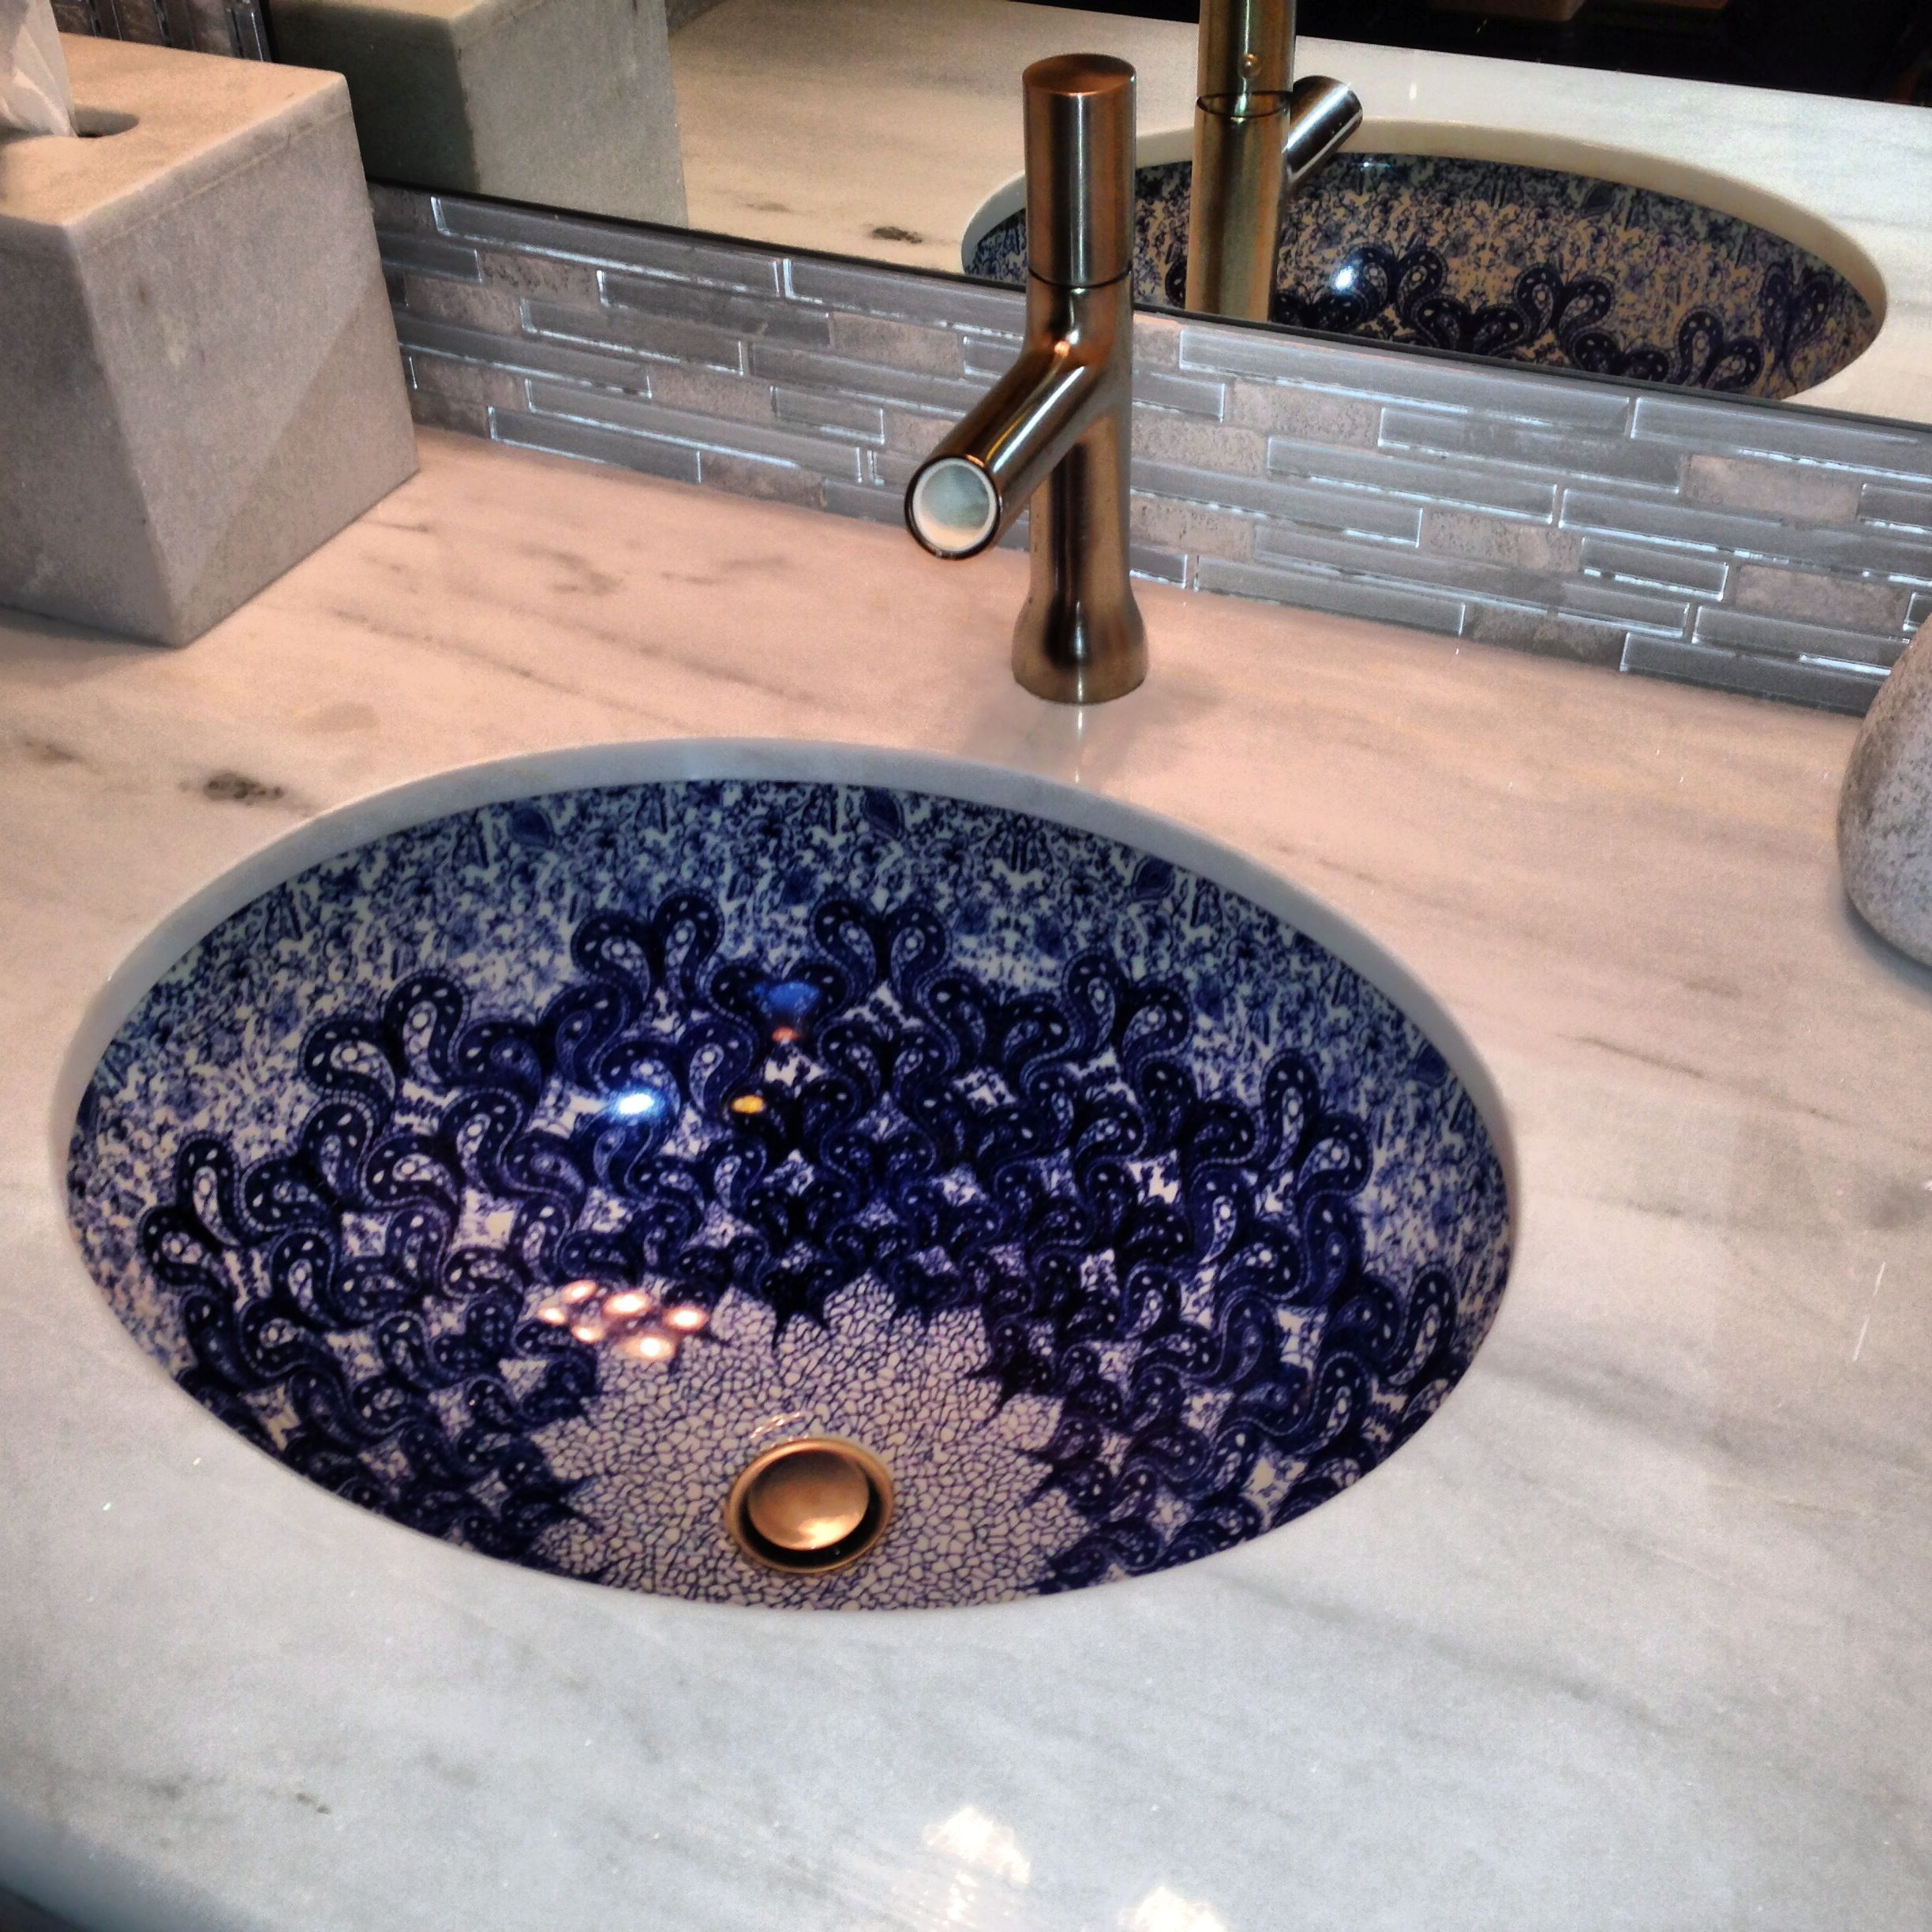 I am imagining this sink but with Polish Pottery. #polishpottery ...